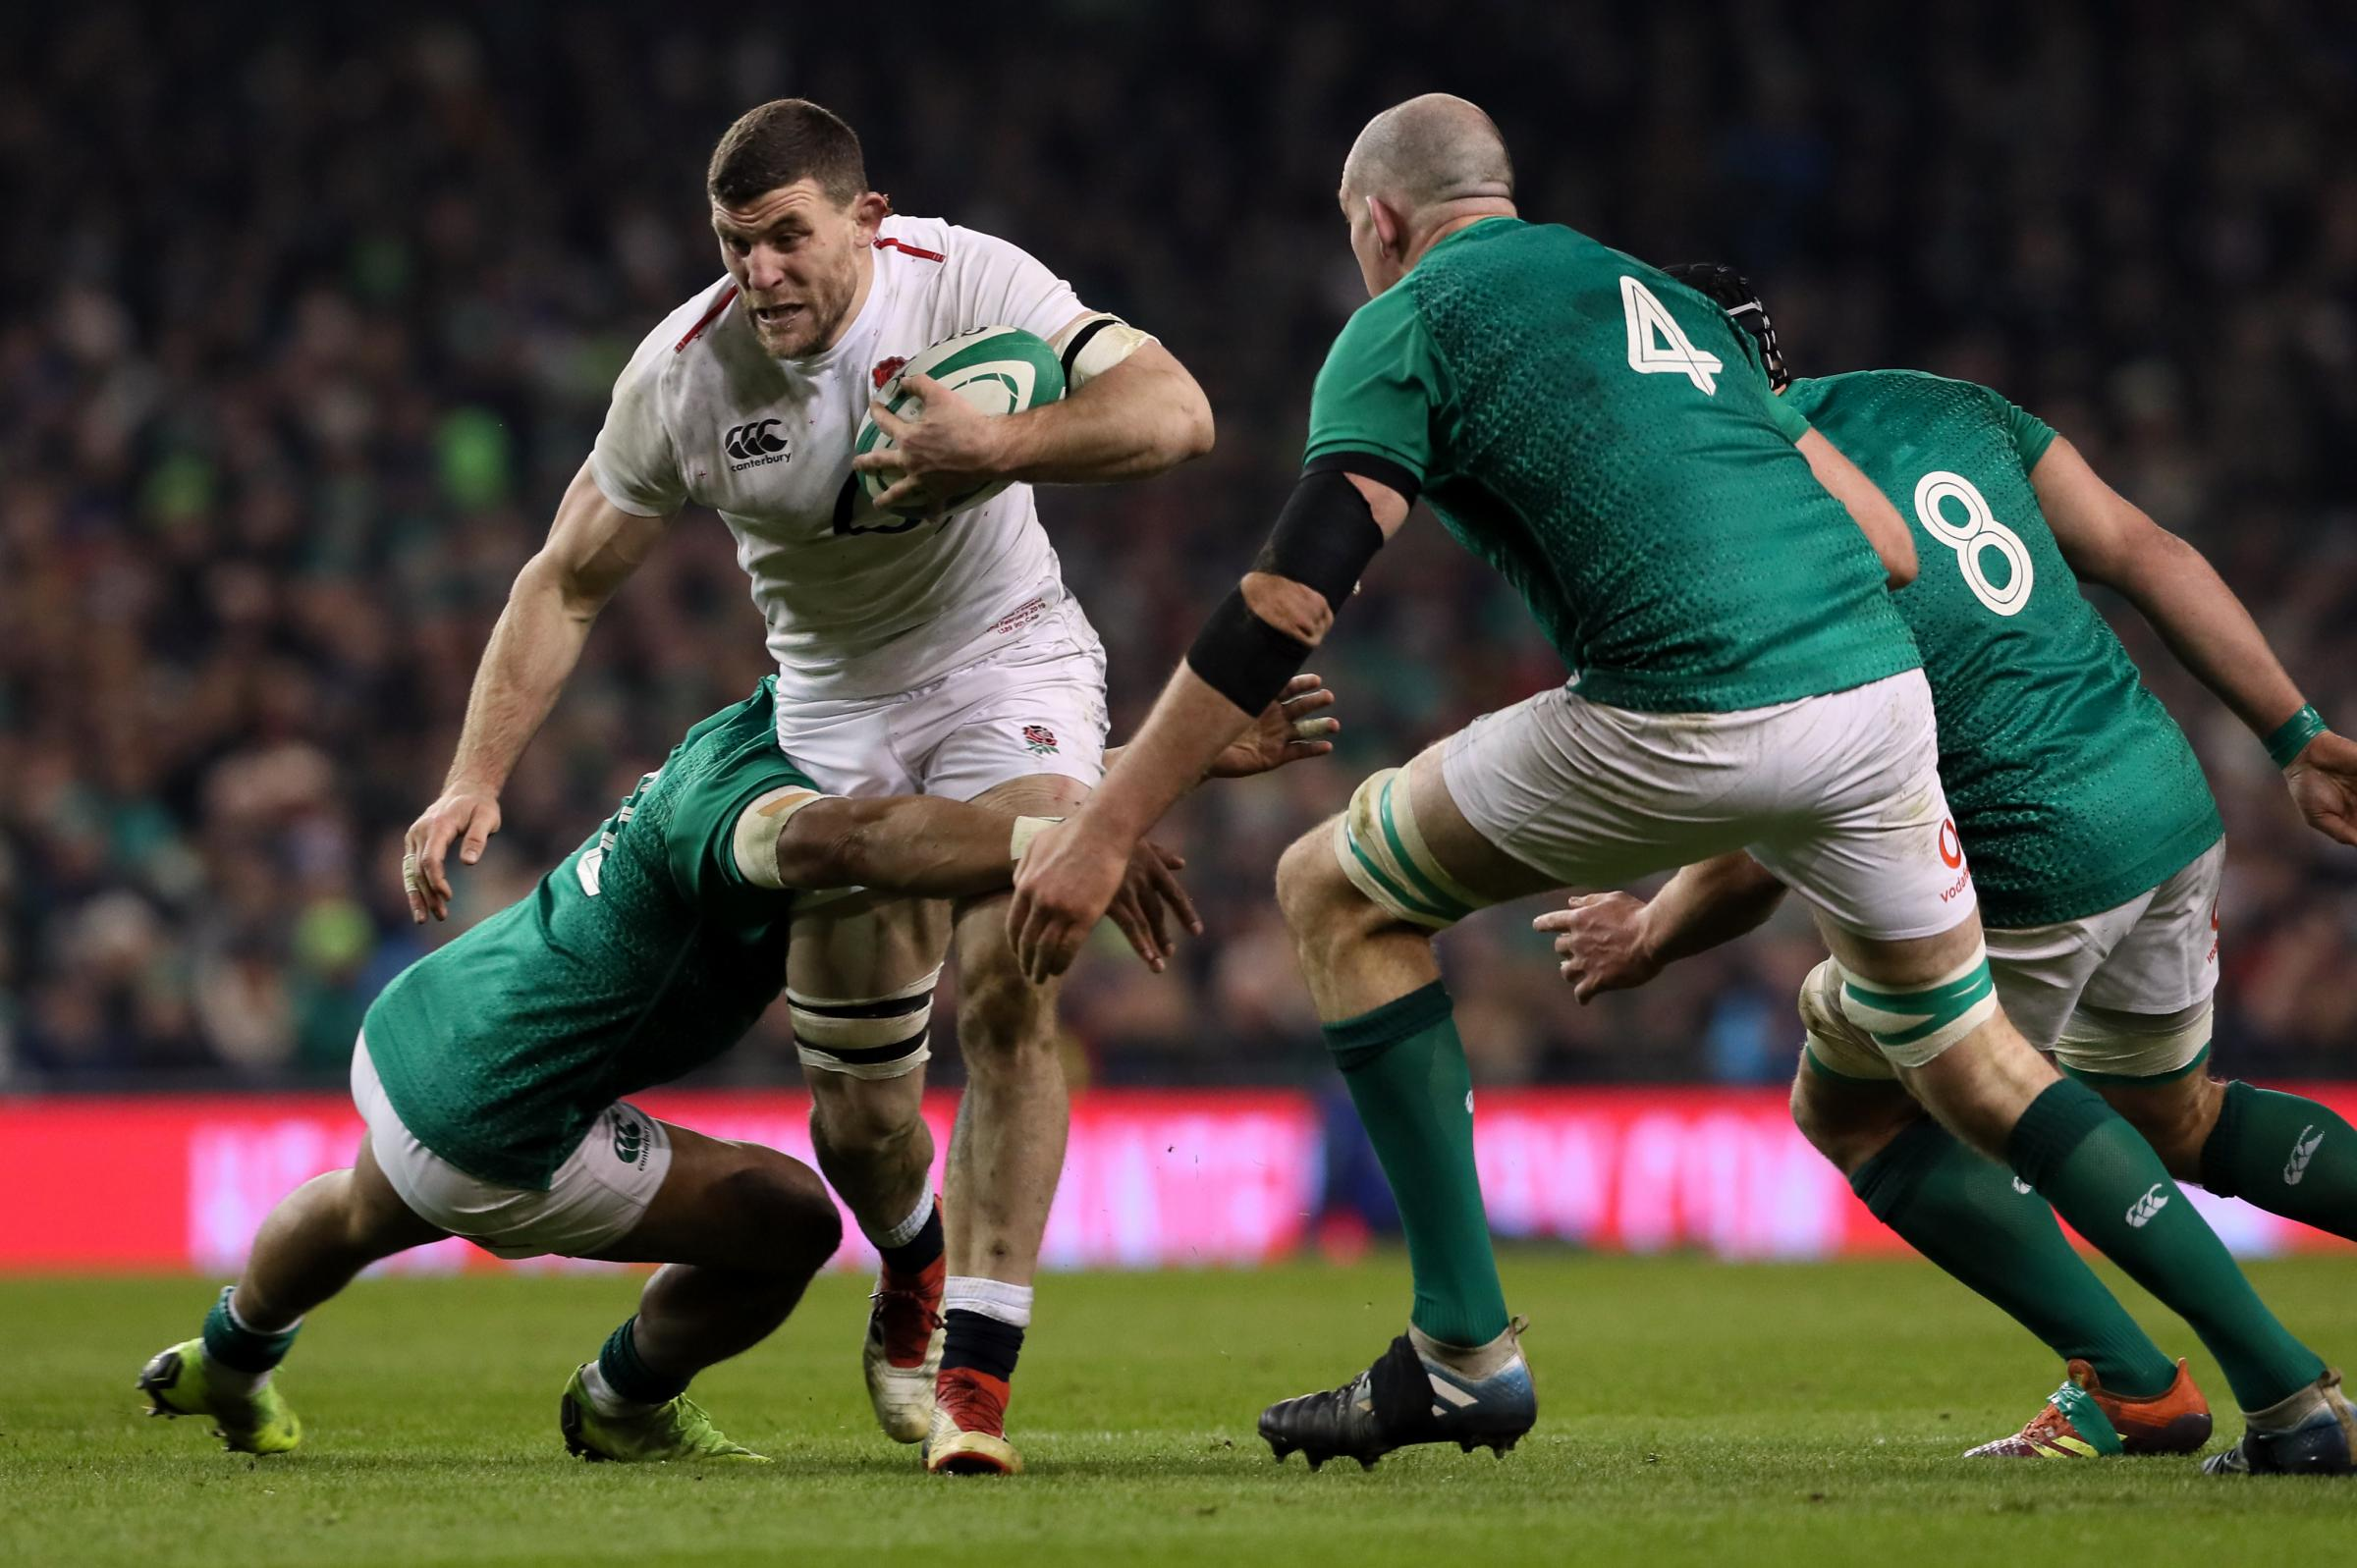 Mark Wilson: The Cumbrian will be hoping to impress again for England against France this Sunday after starring in last weekend's win over Ireland